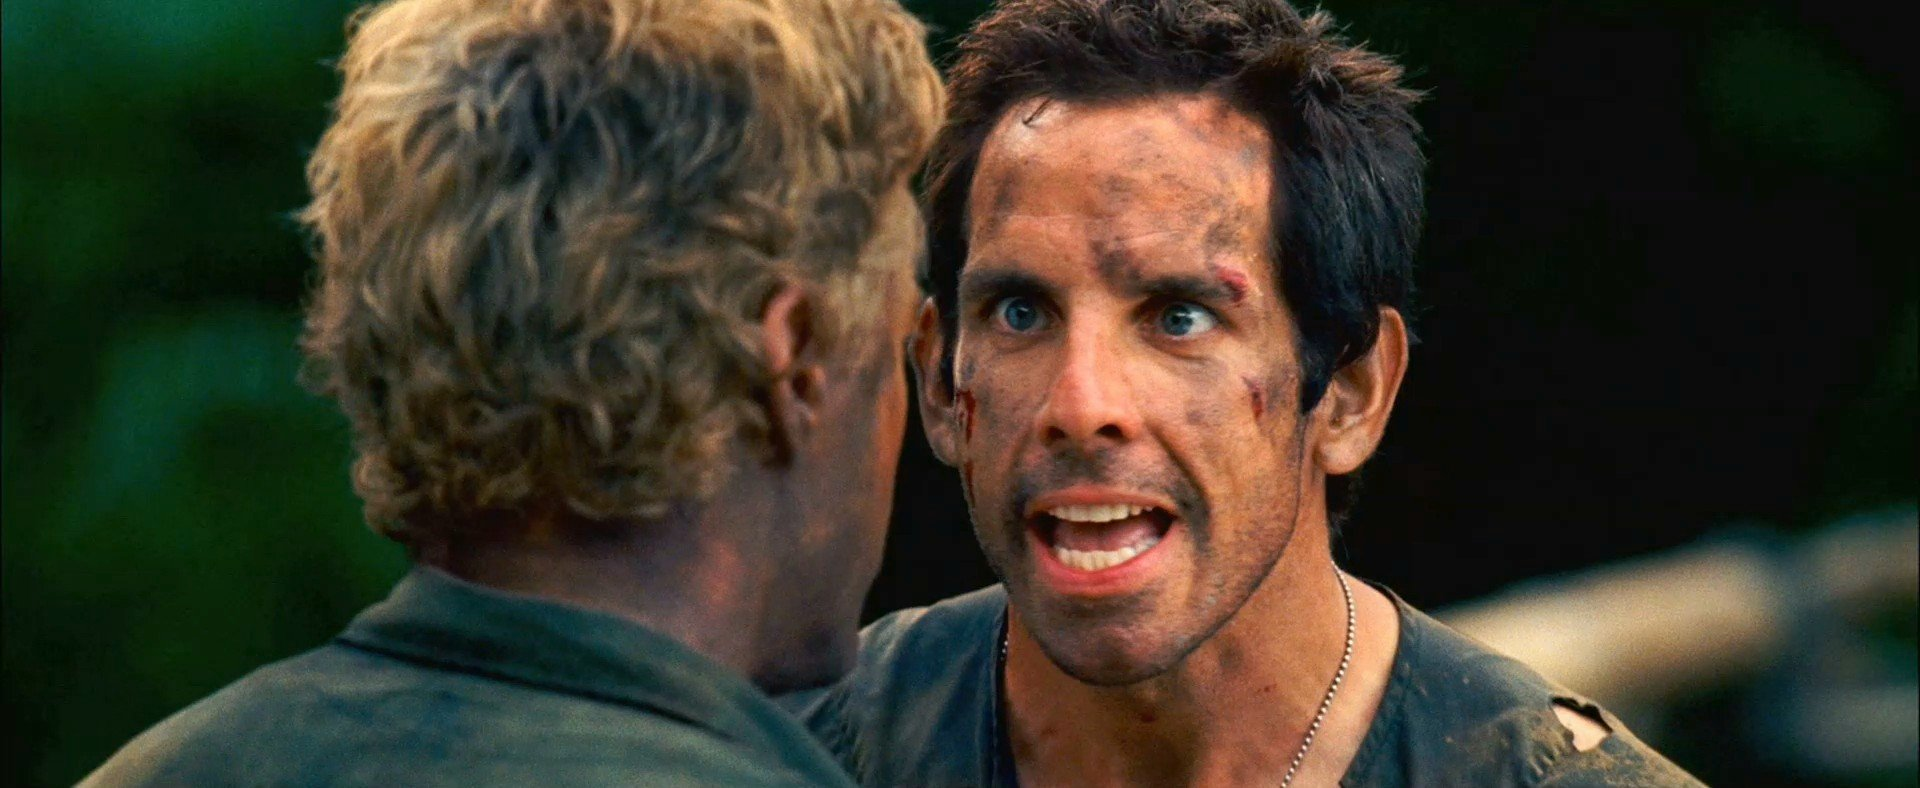 Take 2: Tropic Thunder – Ben Oliver